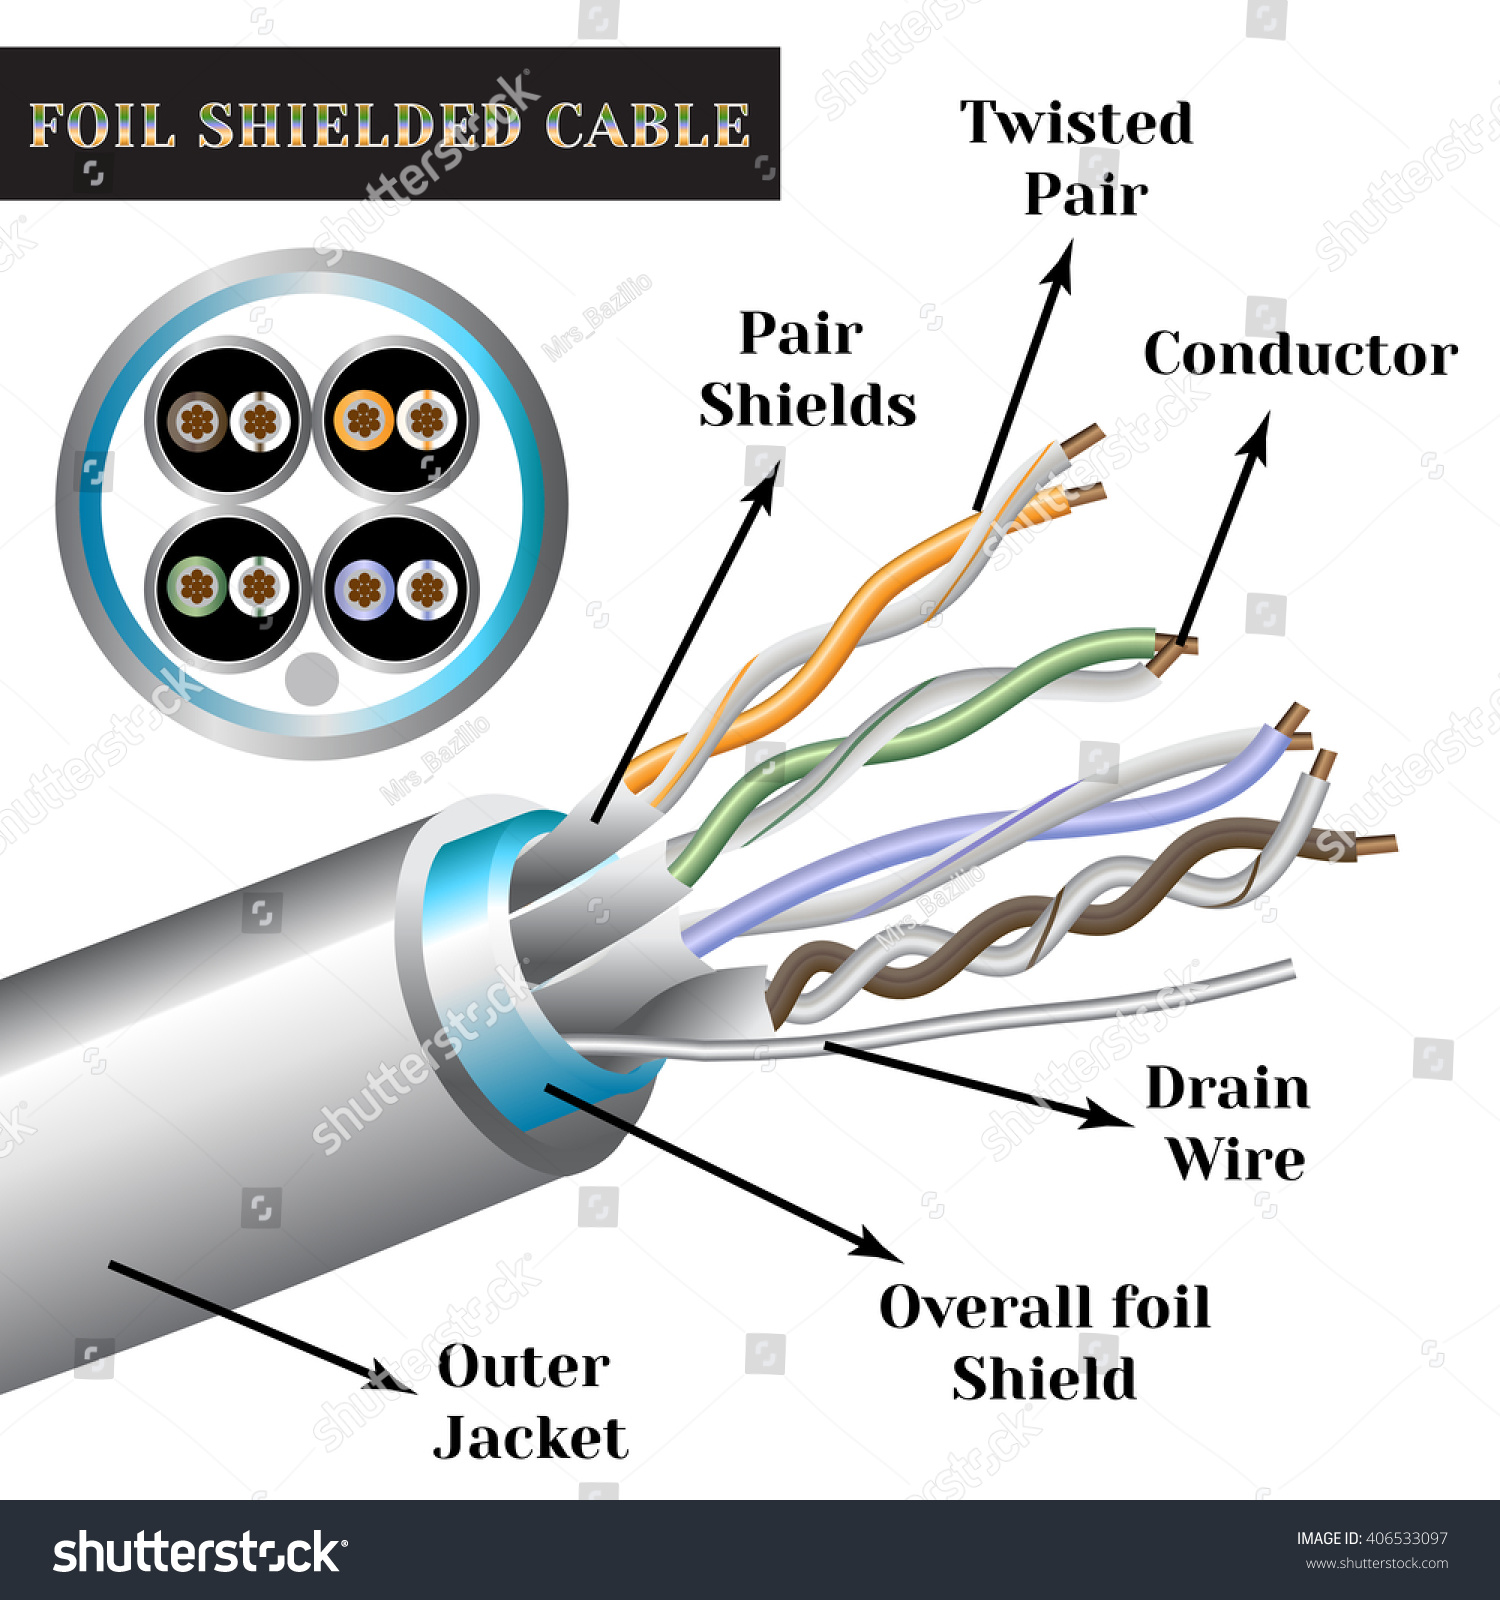 [SCHEMATICS_4US]  Twistedpair Cable Symbols Foil Shielded Cable Stock Vector (Royalty Free)  406533097 | Wiring Diagram For Twisted Shielded Cable |  | Shutterstock